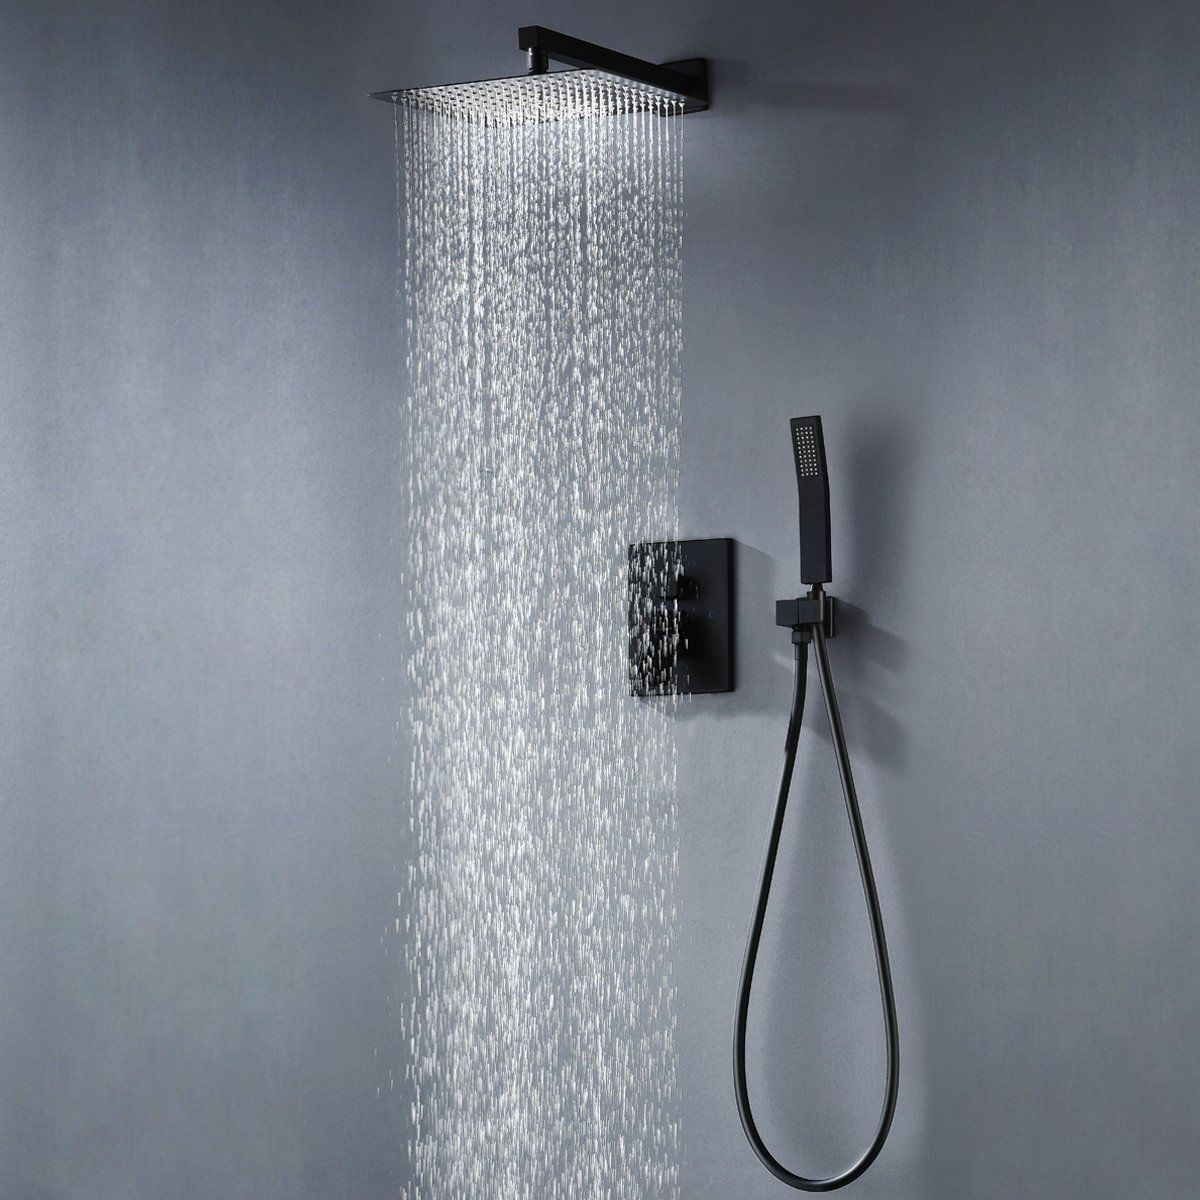 Details About Shower Faucet System 12 Inch Rain Shower Head With Hand Shower Matt Black